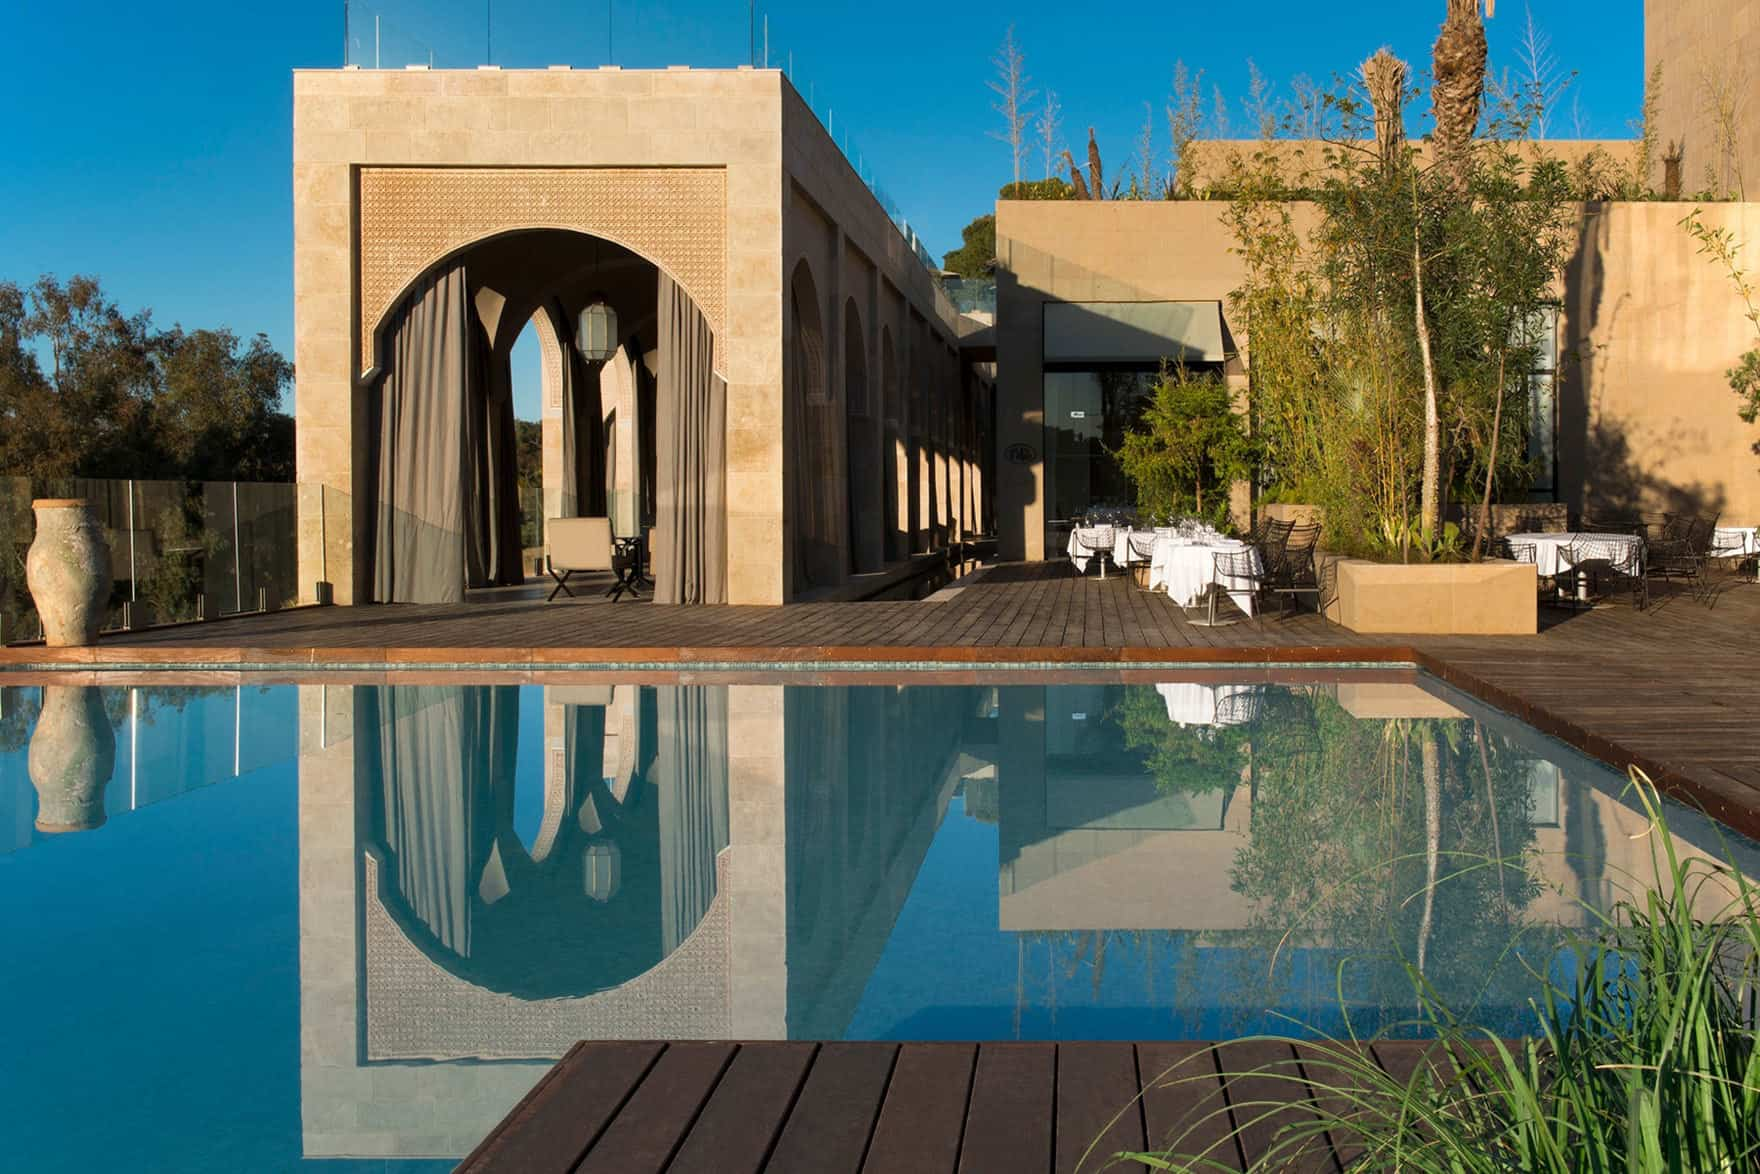 The charming hotel sahrai from fez morocco for Charming hotels of the world